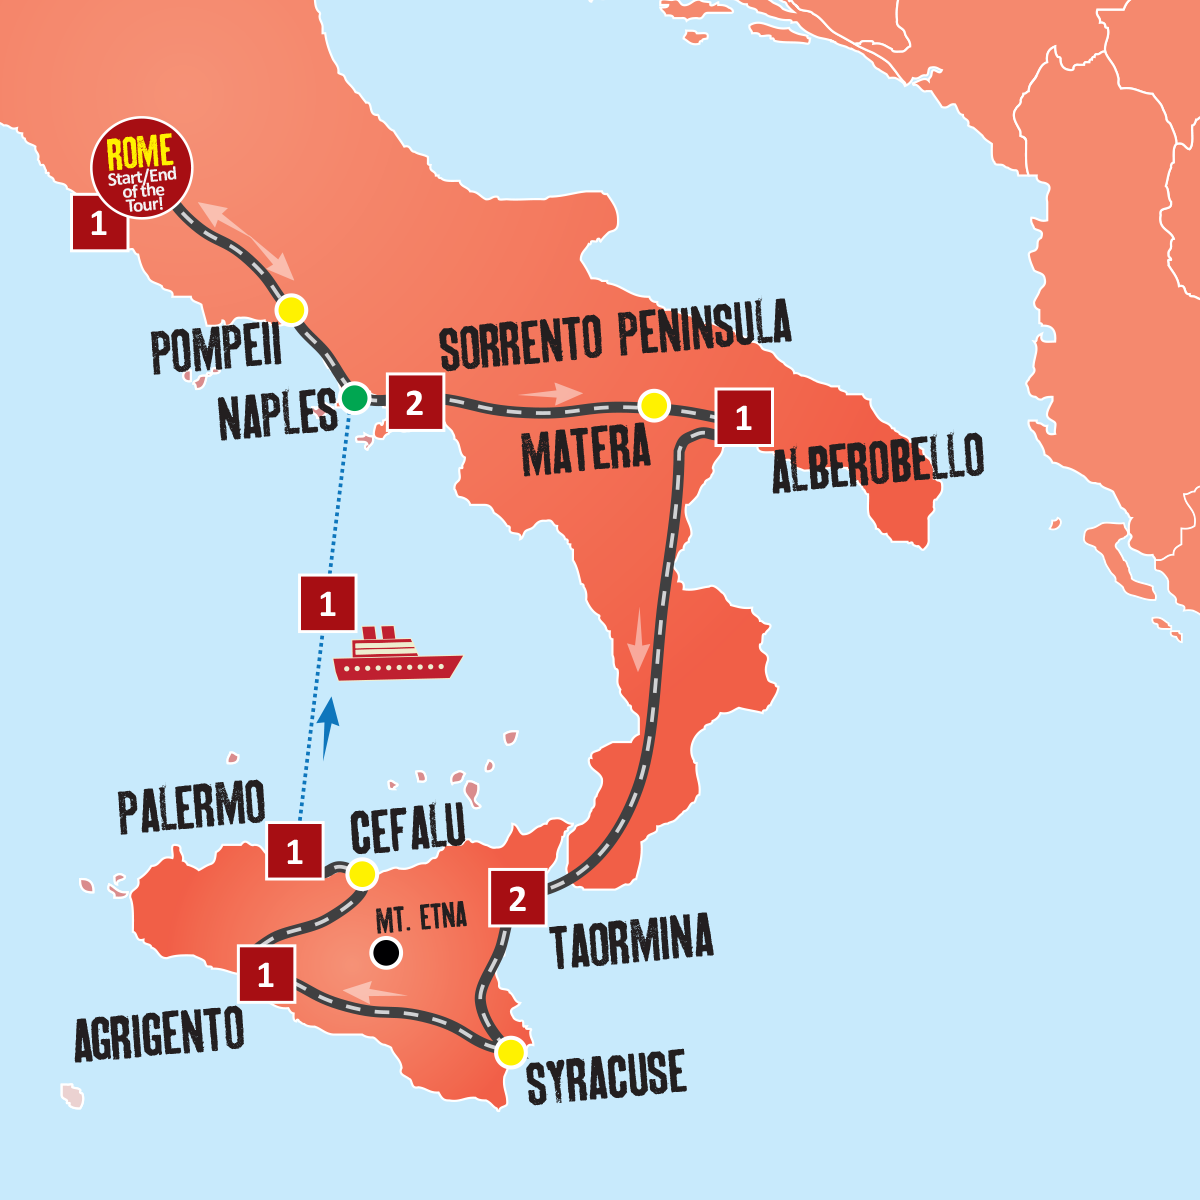 Highlights of Southern Italy & Sicily